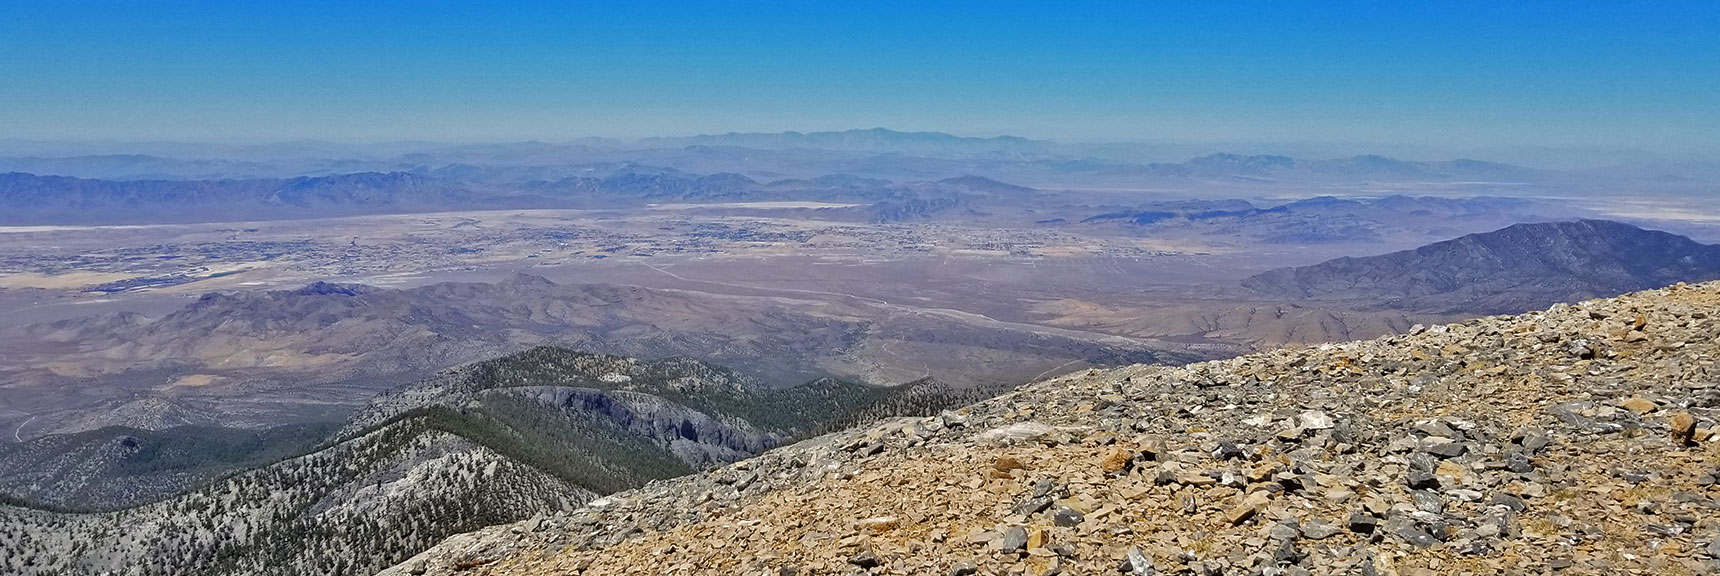 Pahrump with Telescope Peak in Background from Charleston Peak | Griffith Peak & Charleston Peak Circuit Run, Spring Mountains, Nevada